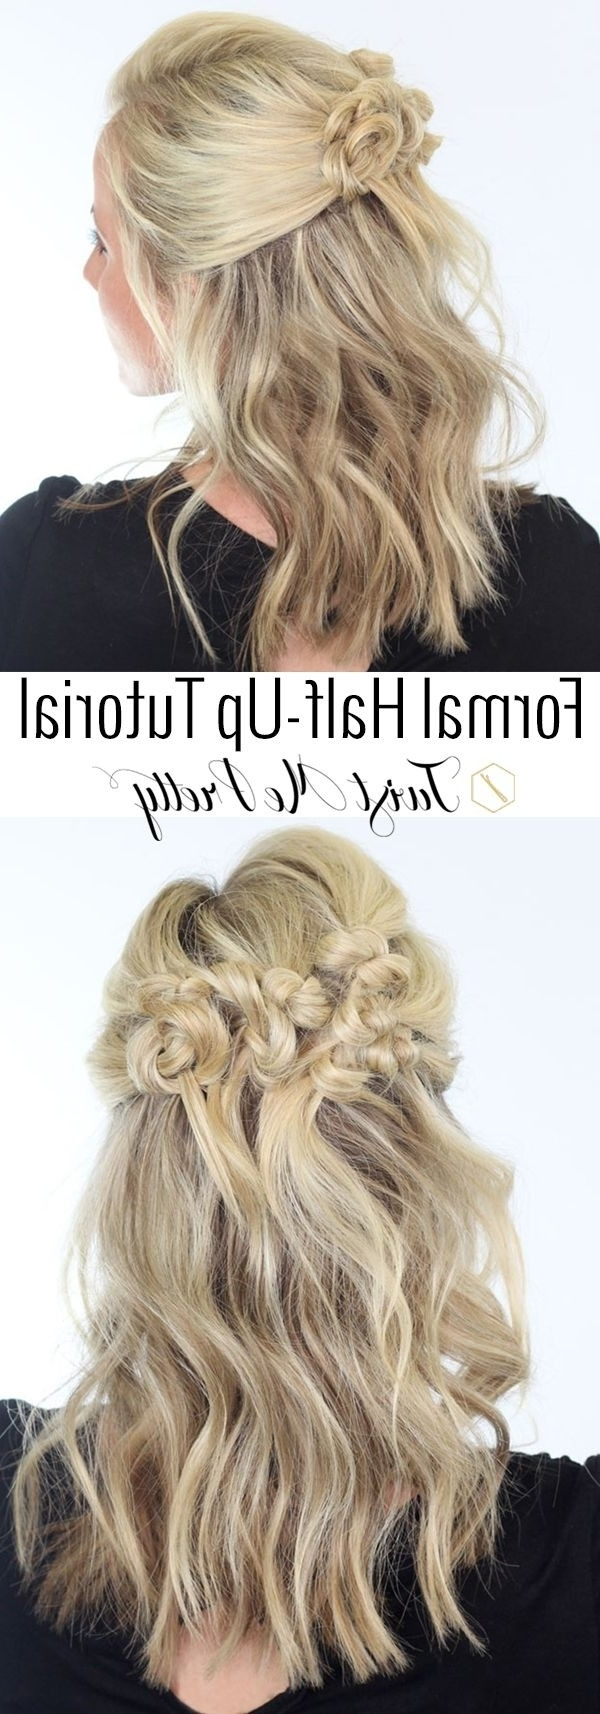 20 Great Hairstyles For Medium Length Hair 2016 – Pretty Designs For Half Hair Updos For Medium Length Hair (View 1 of 15)